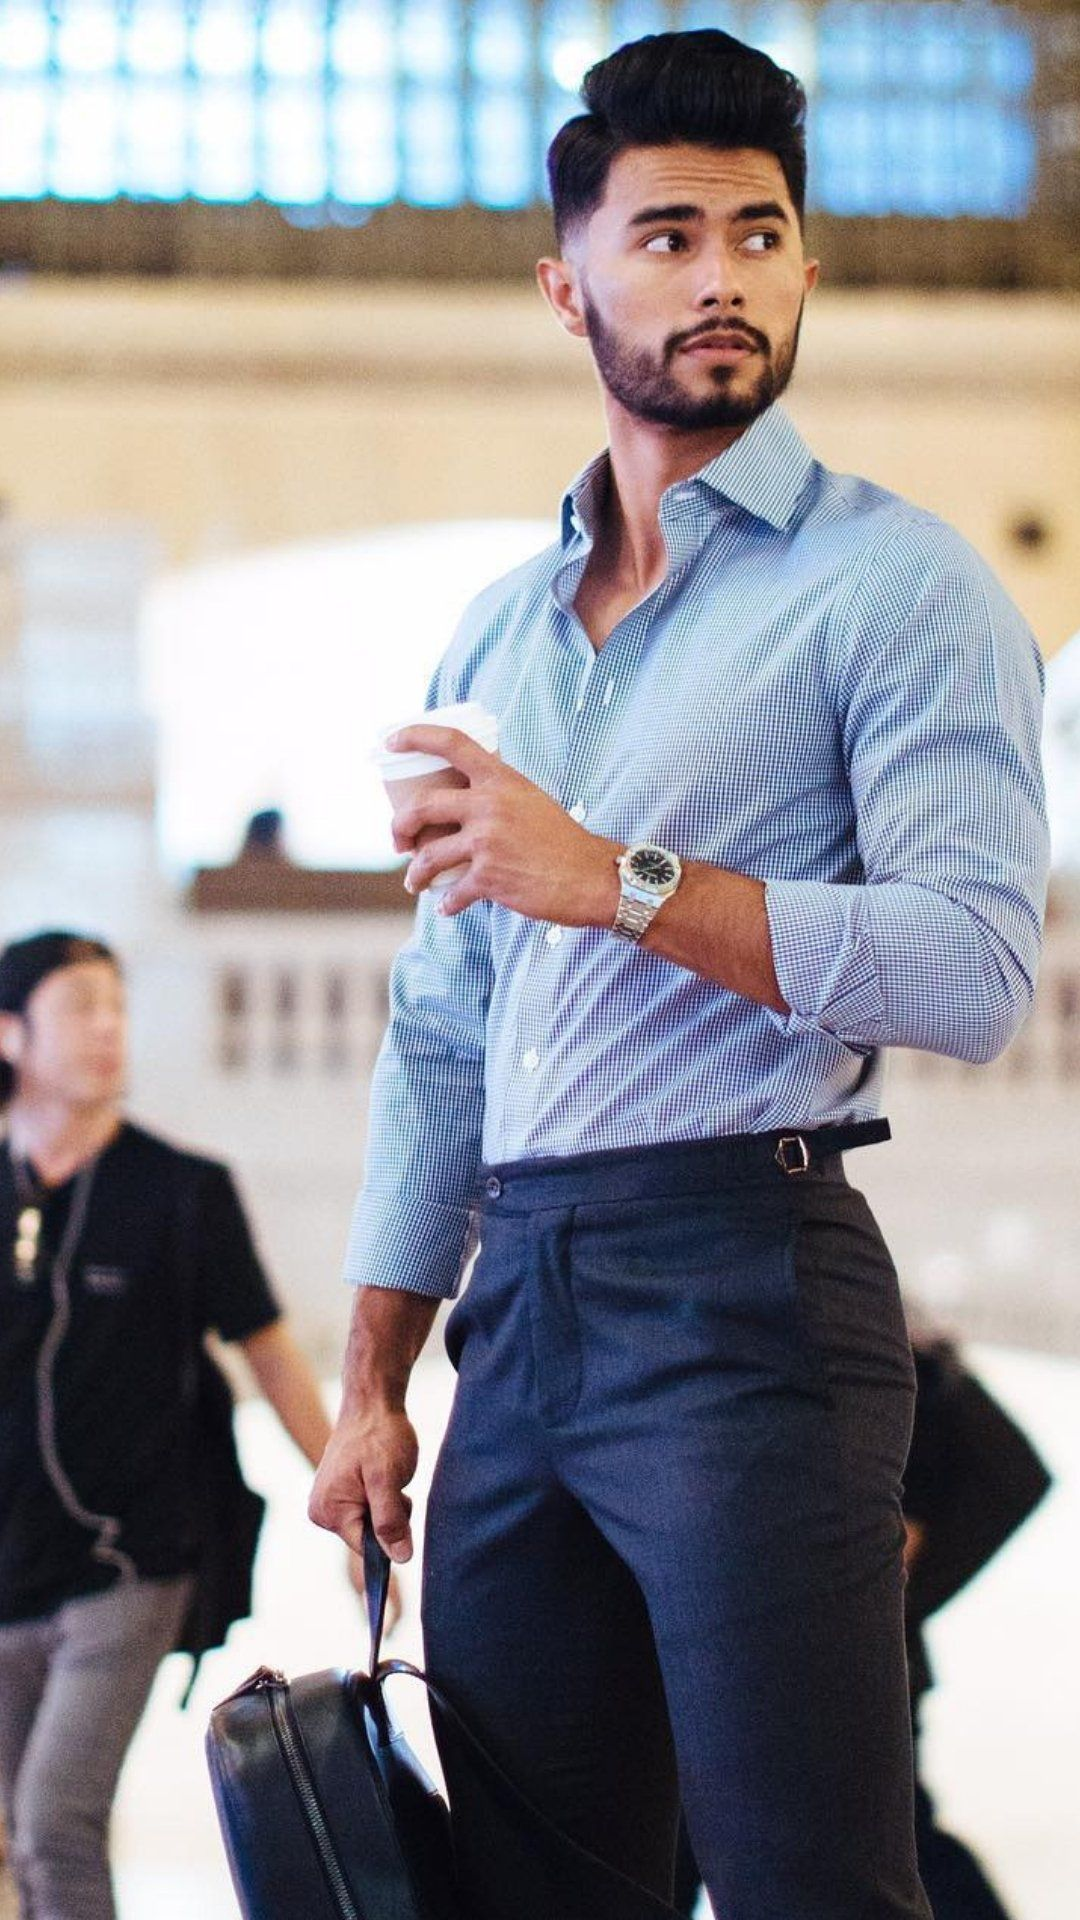 5 Everyday Outfits To Look Great   Shirt outfit men, Men